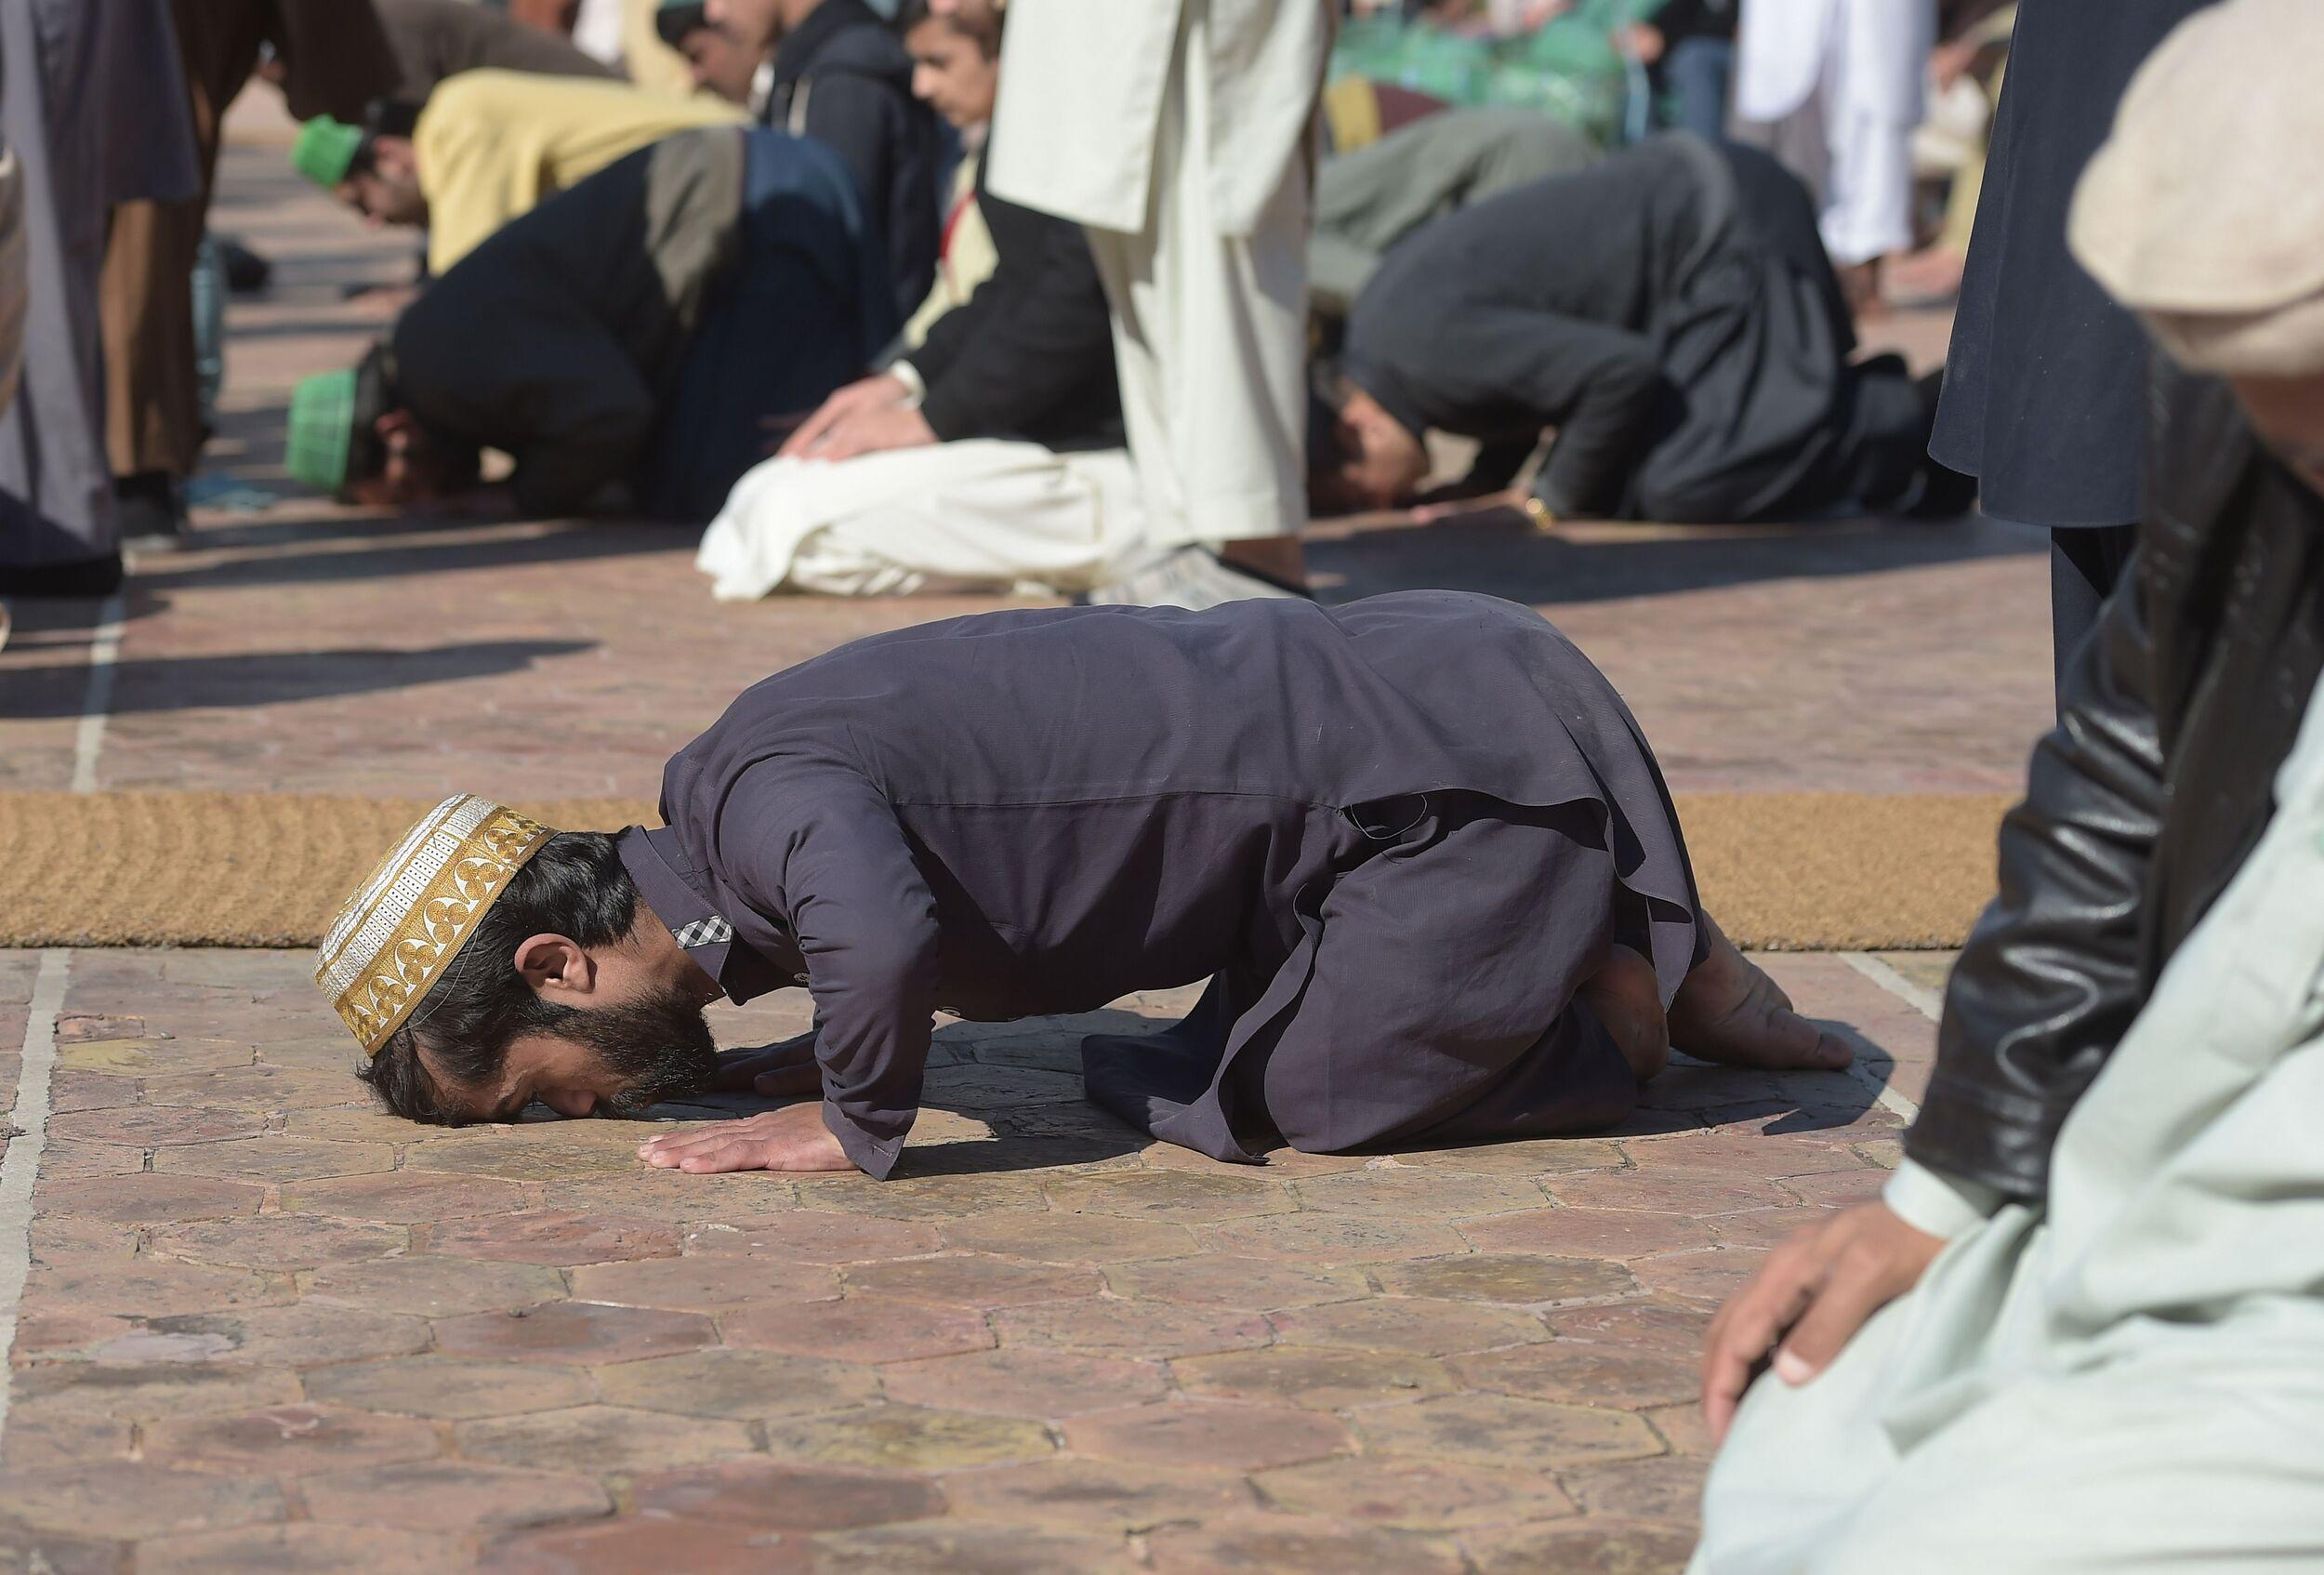 In this picture taken on February 22, 2019, Rozi Khan (C), a 25-year-old Pakistani waiter who resembles US actor Peter Dinklage, offers Friday prayers at a mosque in Rawalpindi. - Rozi Khan had never heard of the Game of Thrones -- or its hugely popular character Tyrion Lannister -- until his striking resemblance to the dwarf anti-hero got heads turning at home. (Photo by AAMIR QURESHI / AFP) / To go with PAKISTAN-LIFESTYLE-TELEVISION-ENTERTAINMENT        (Photo credit should read AAMIR QURESHI/AFP/Getty Images)